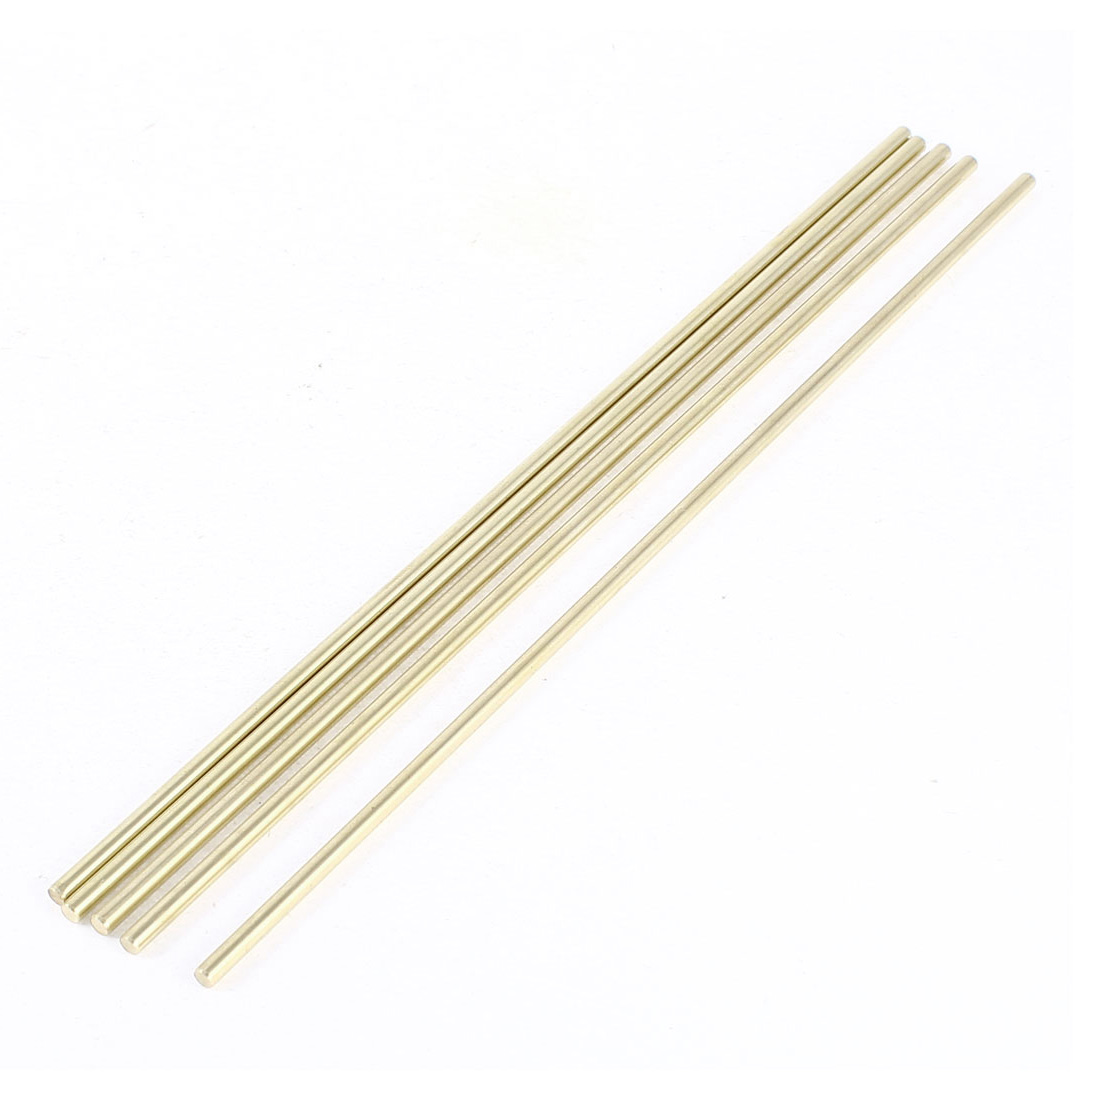 5 Pcs Car Helicopter Model Toy DIY Brass Axles Rod Bars 3mm x 140mm